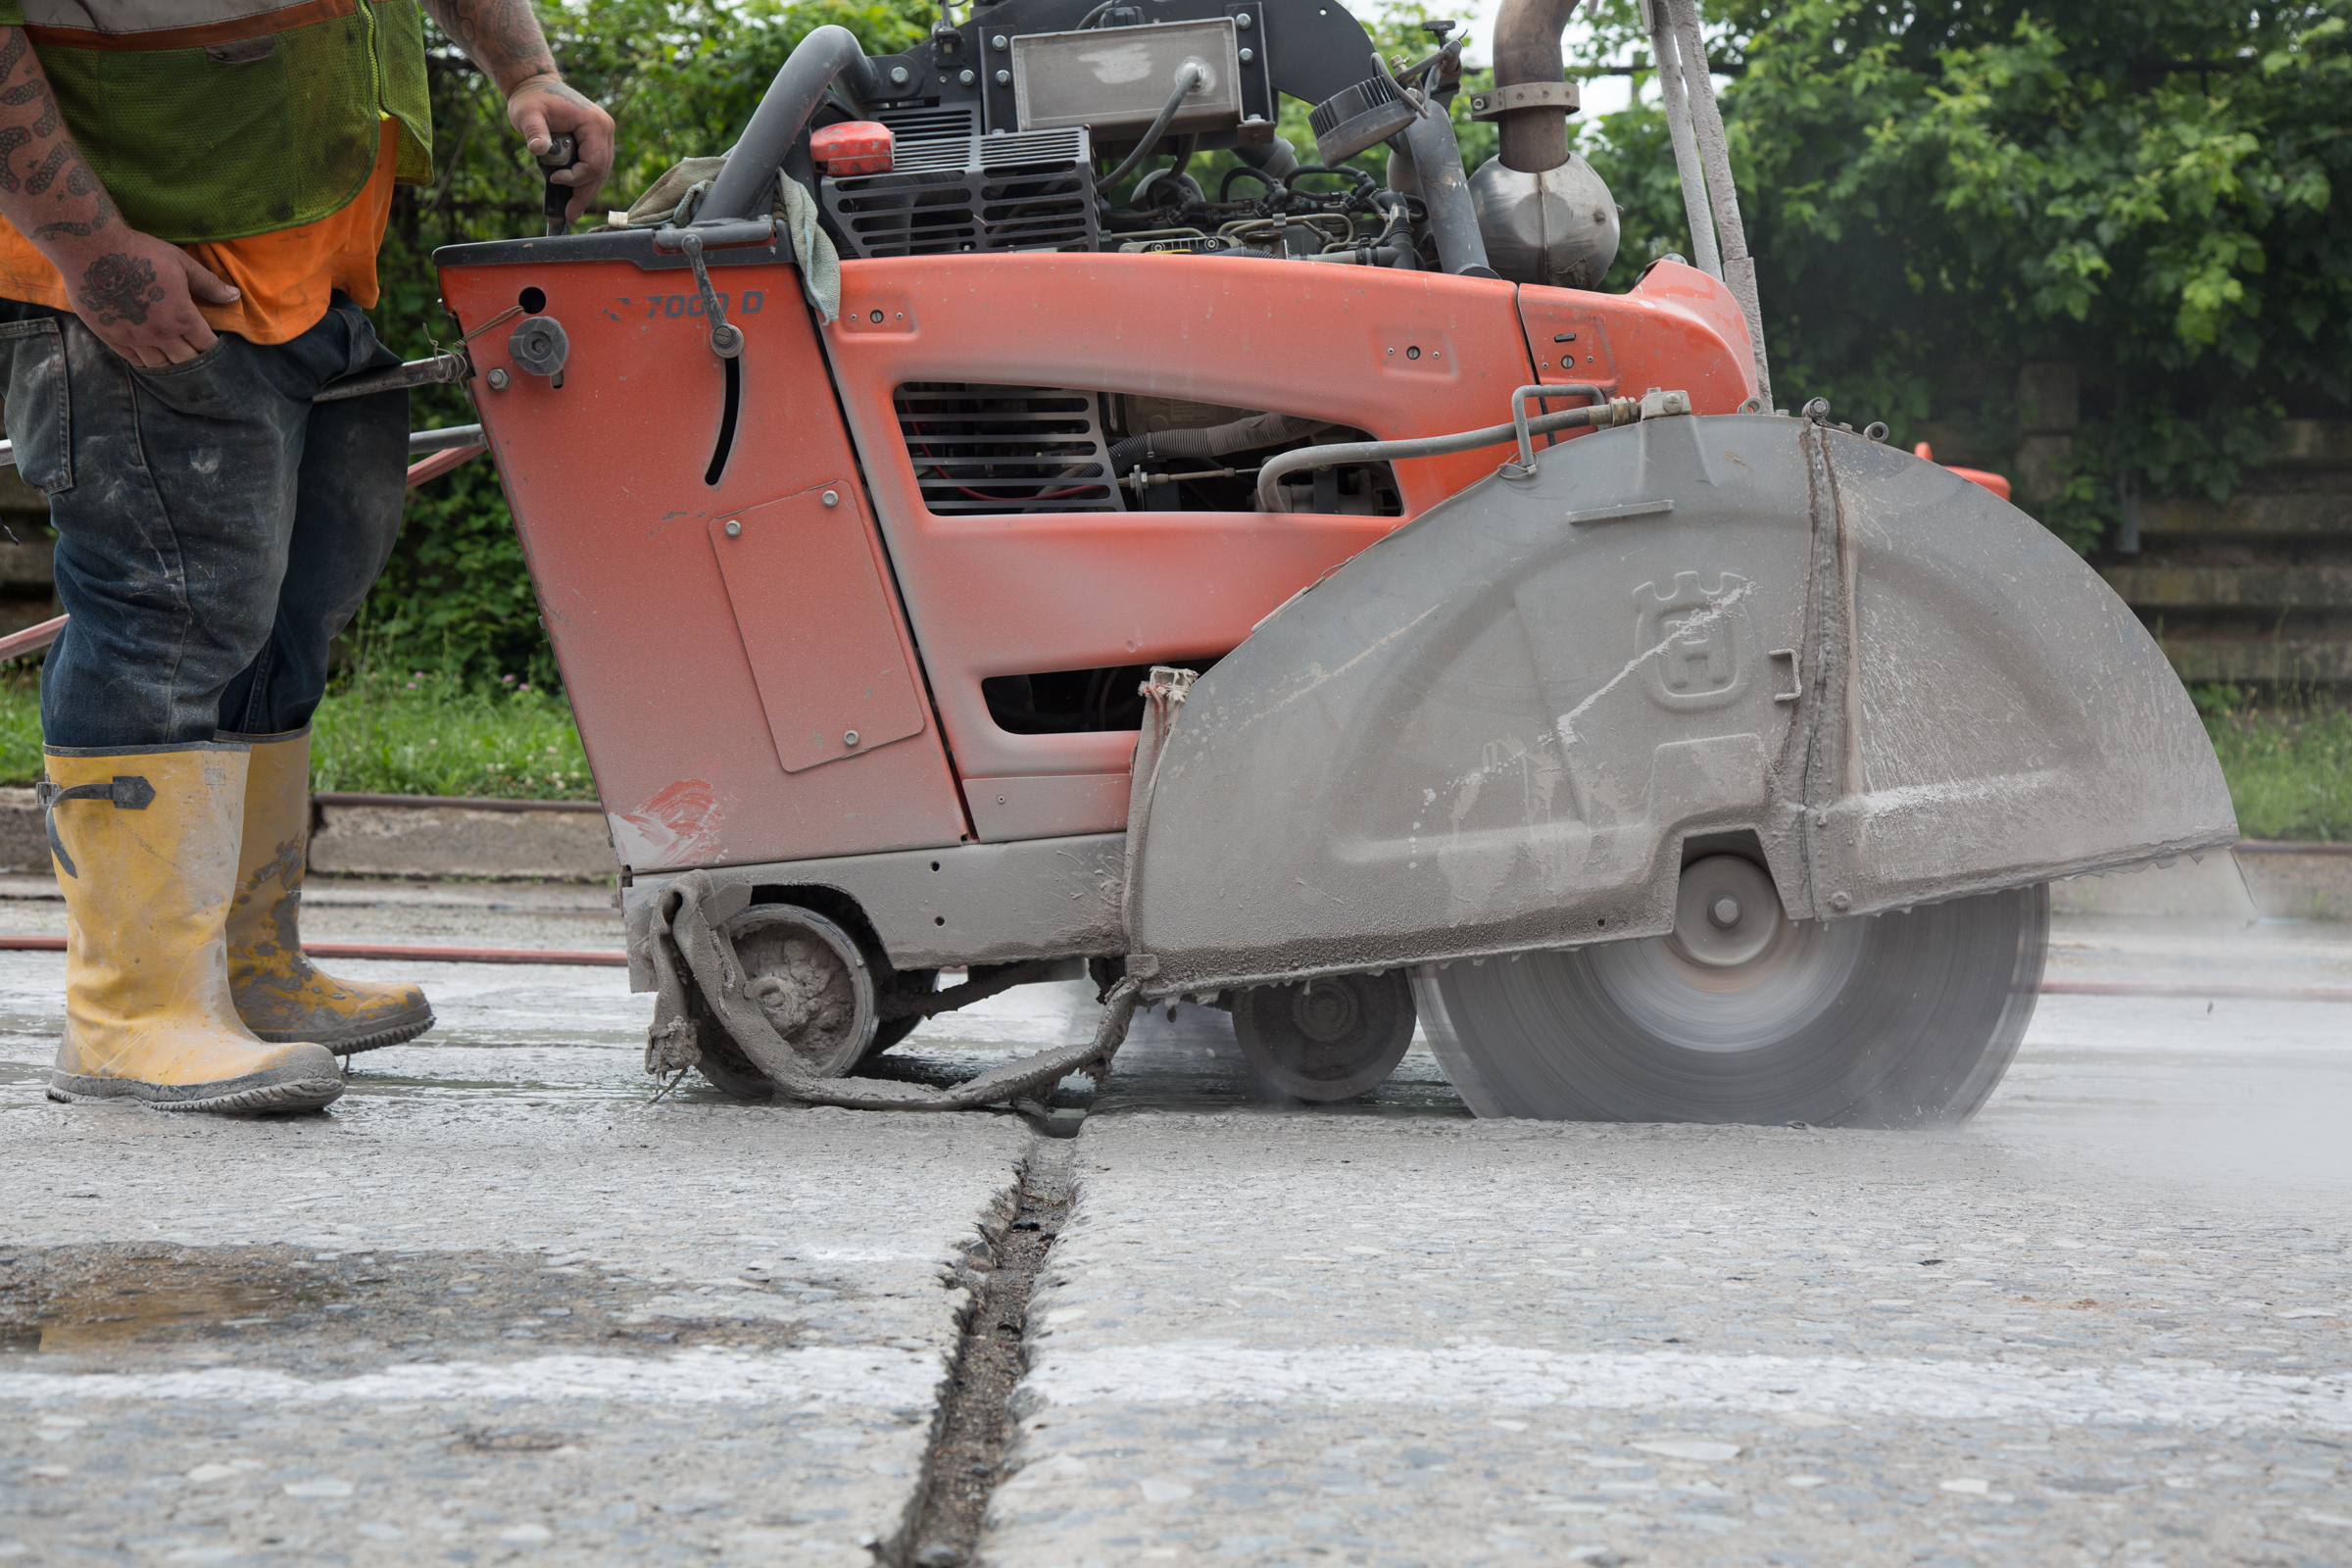 Workers cut the concrete pavement before excavating a trench for a new Peco gas main in Norristown.